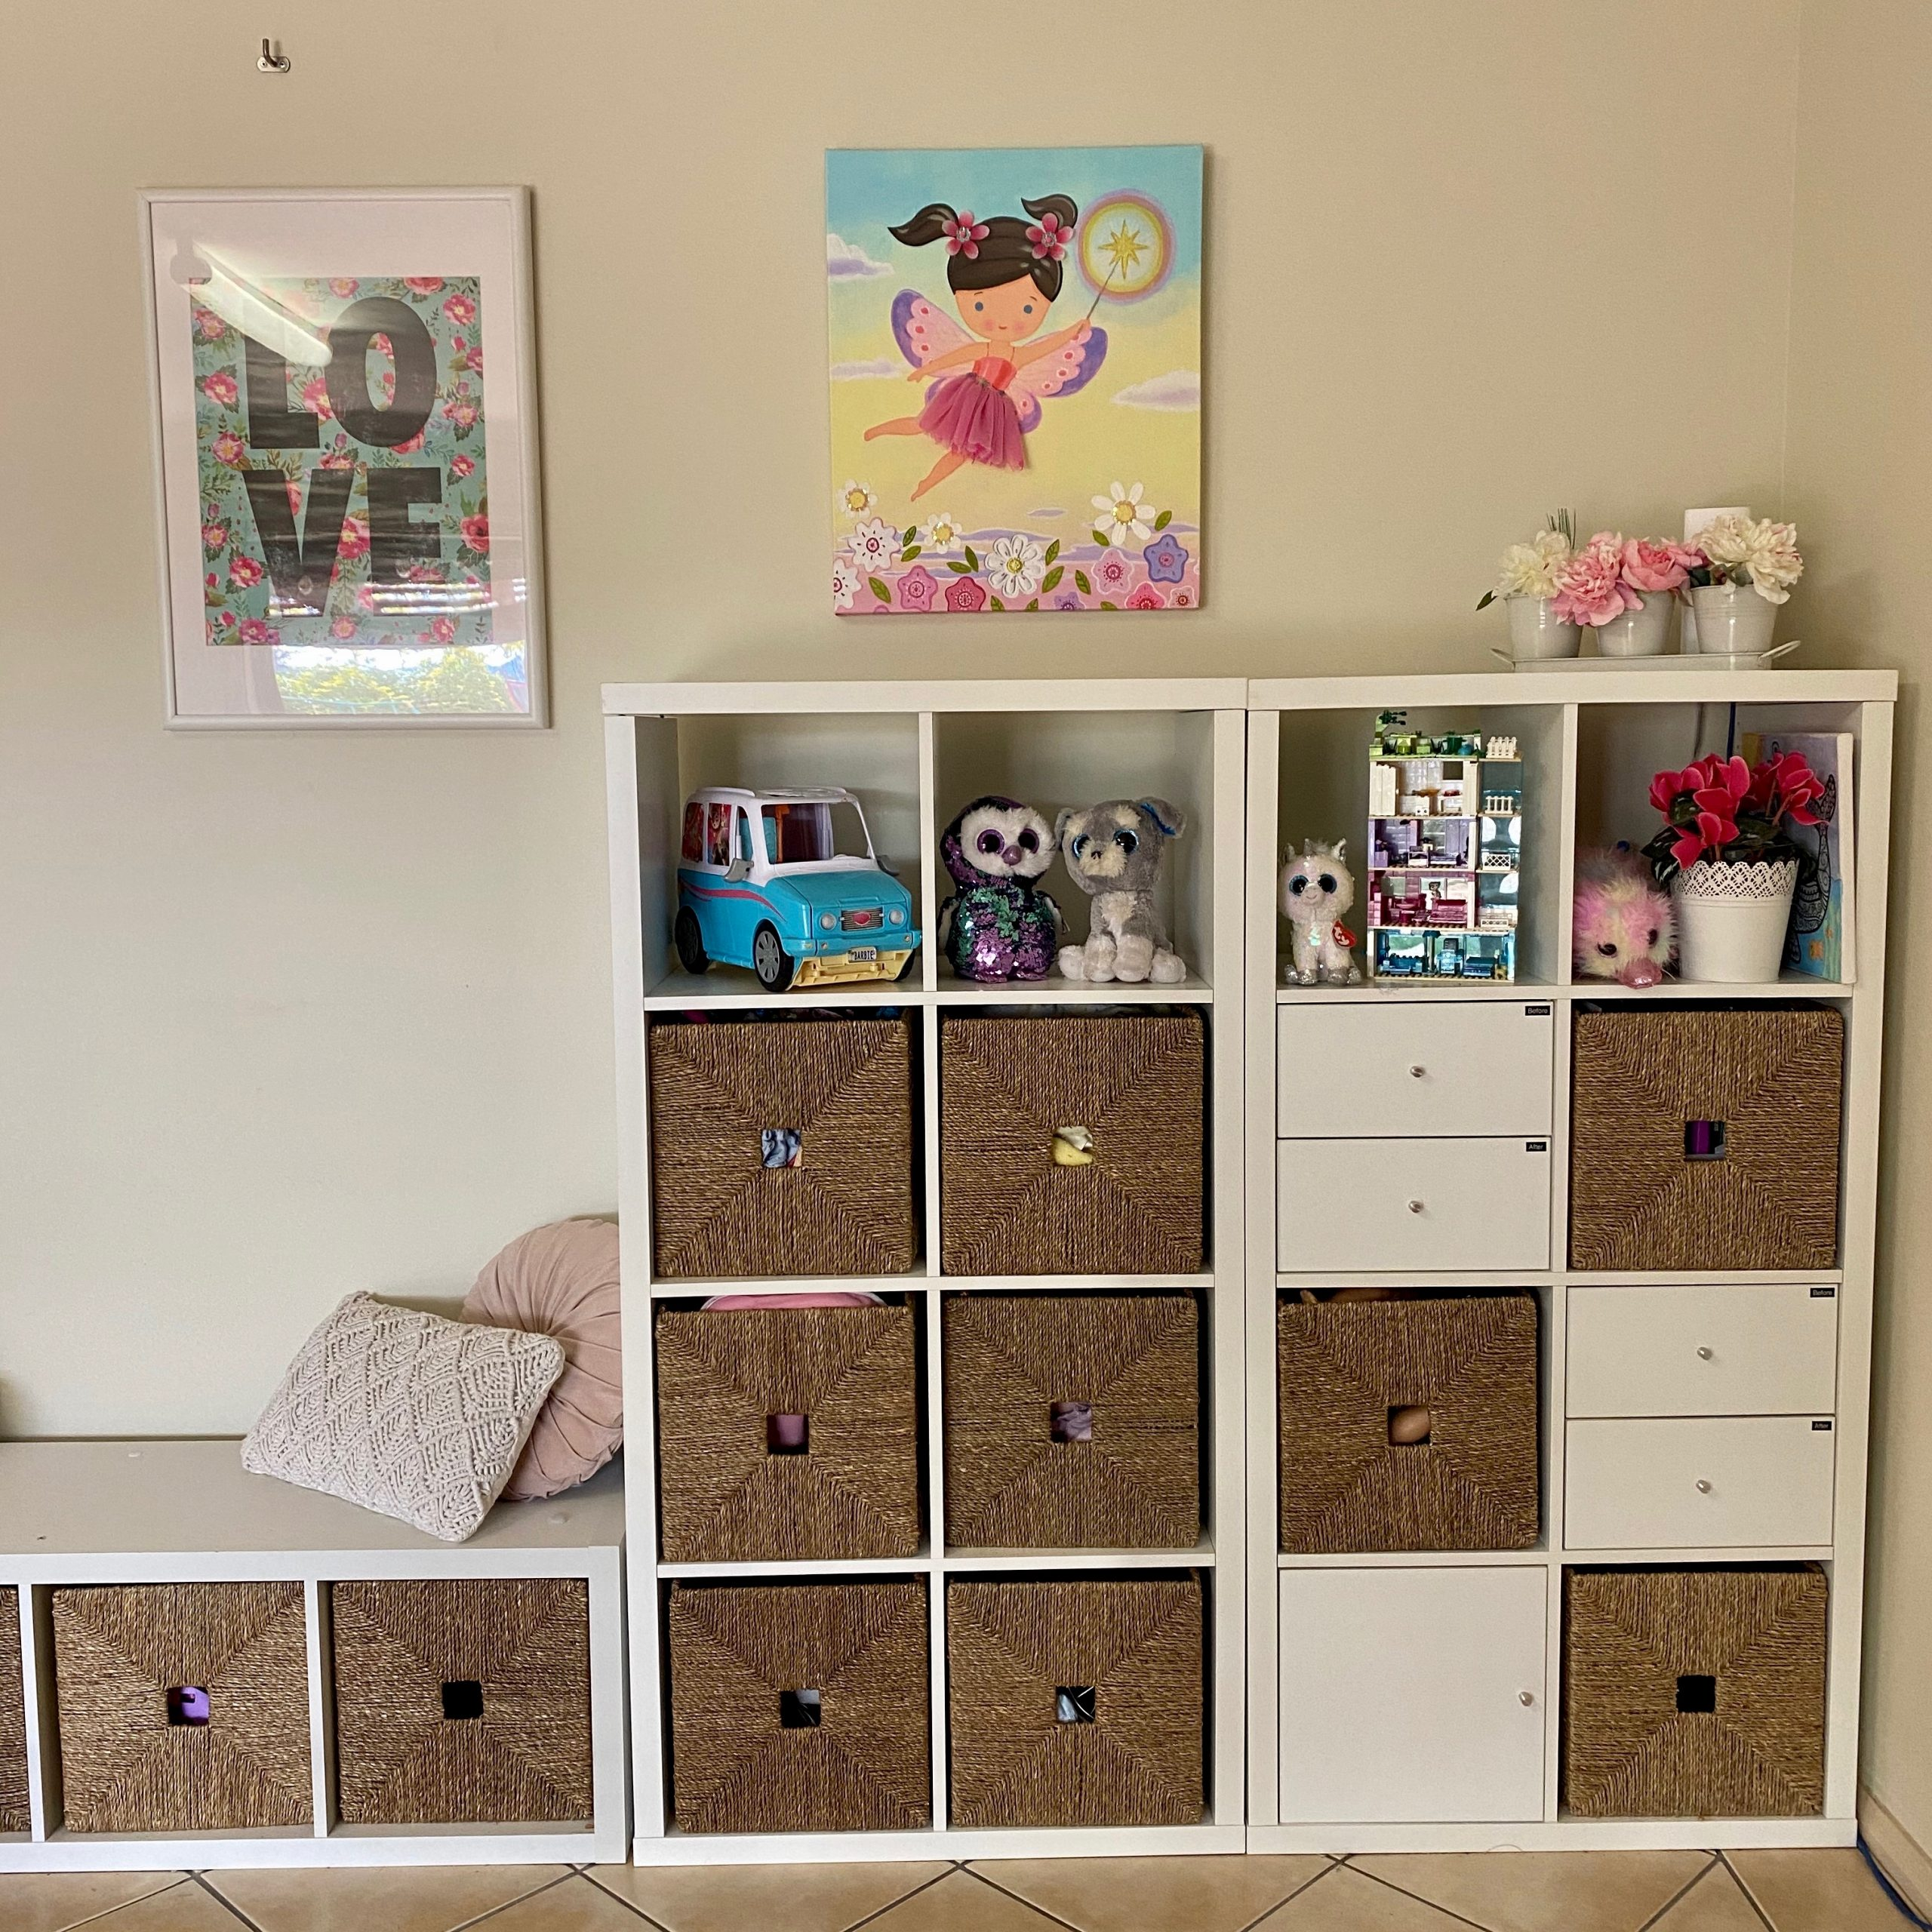 Toy Storage and Organisation - The Organising Bee Canberra